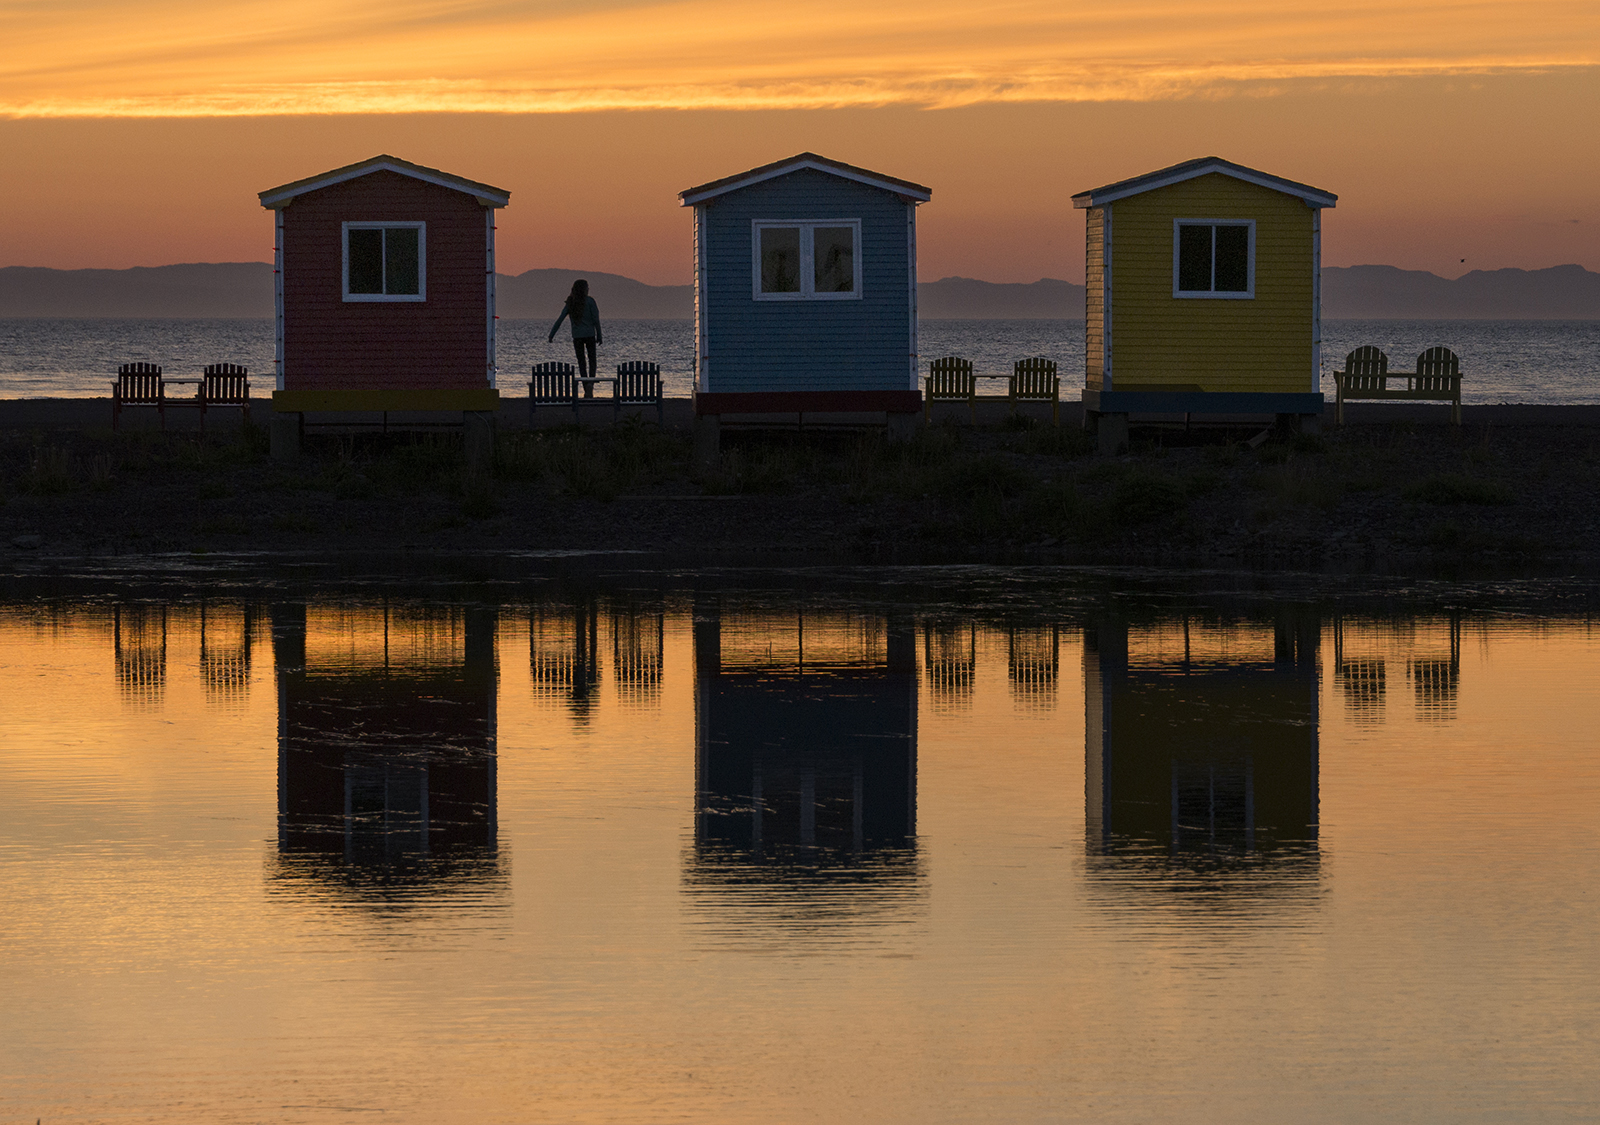 cavendish fishing huts with girl in photo.jpg